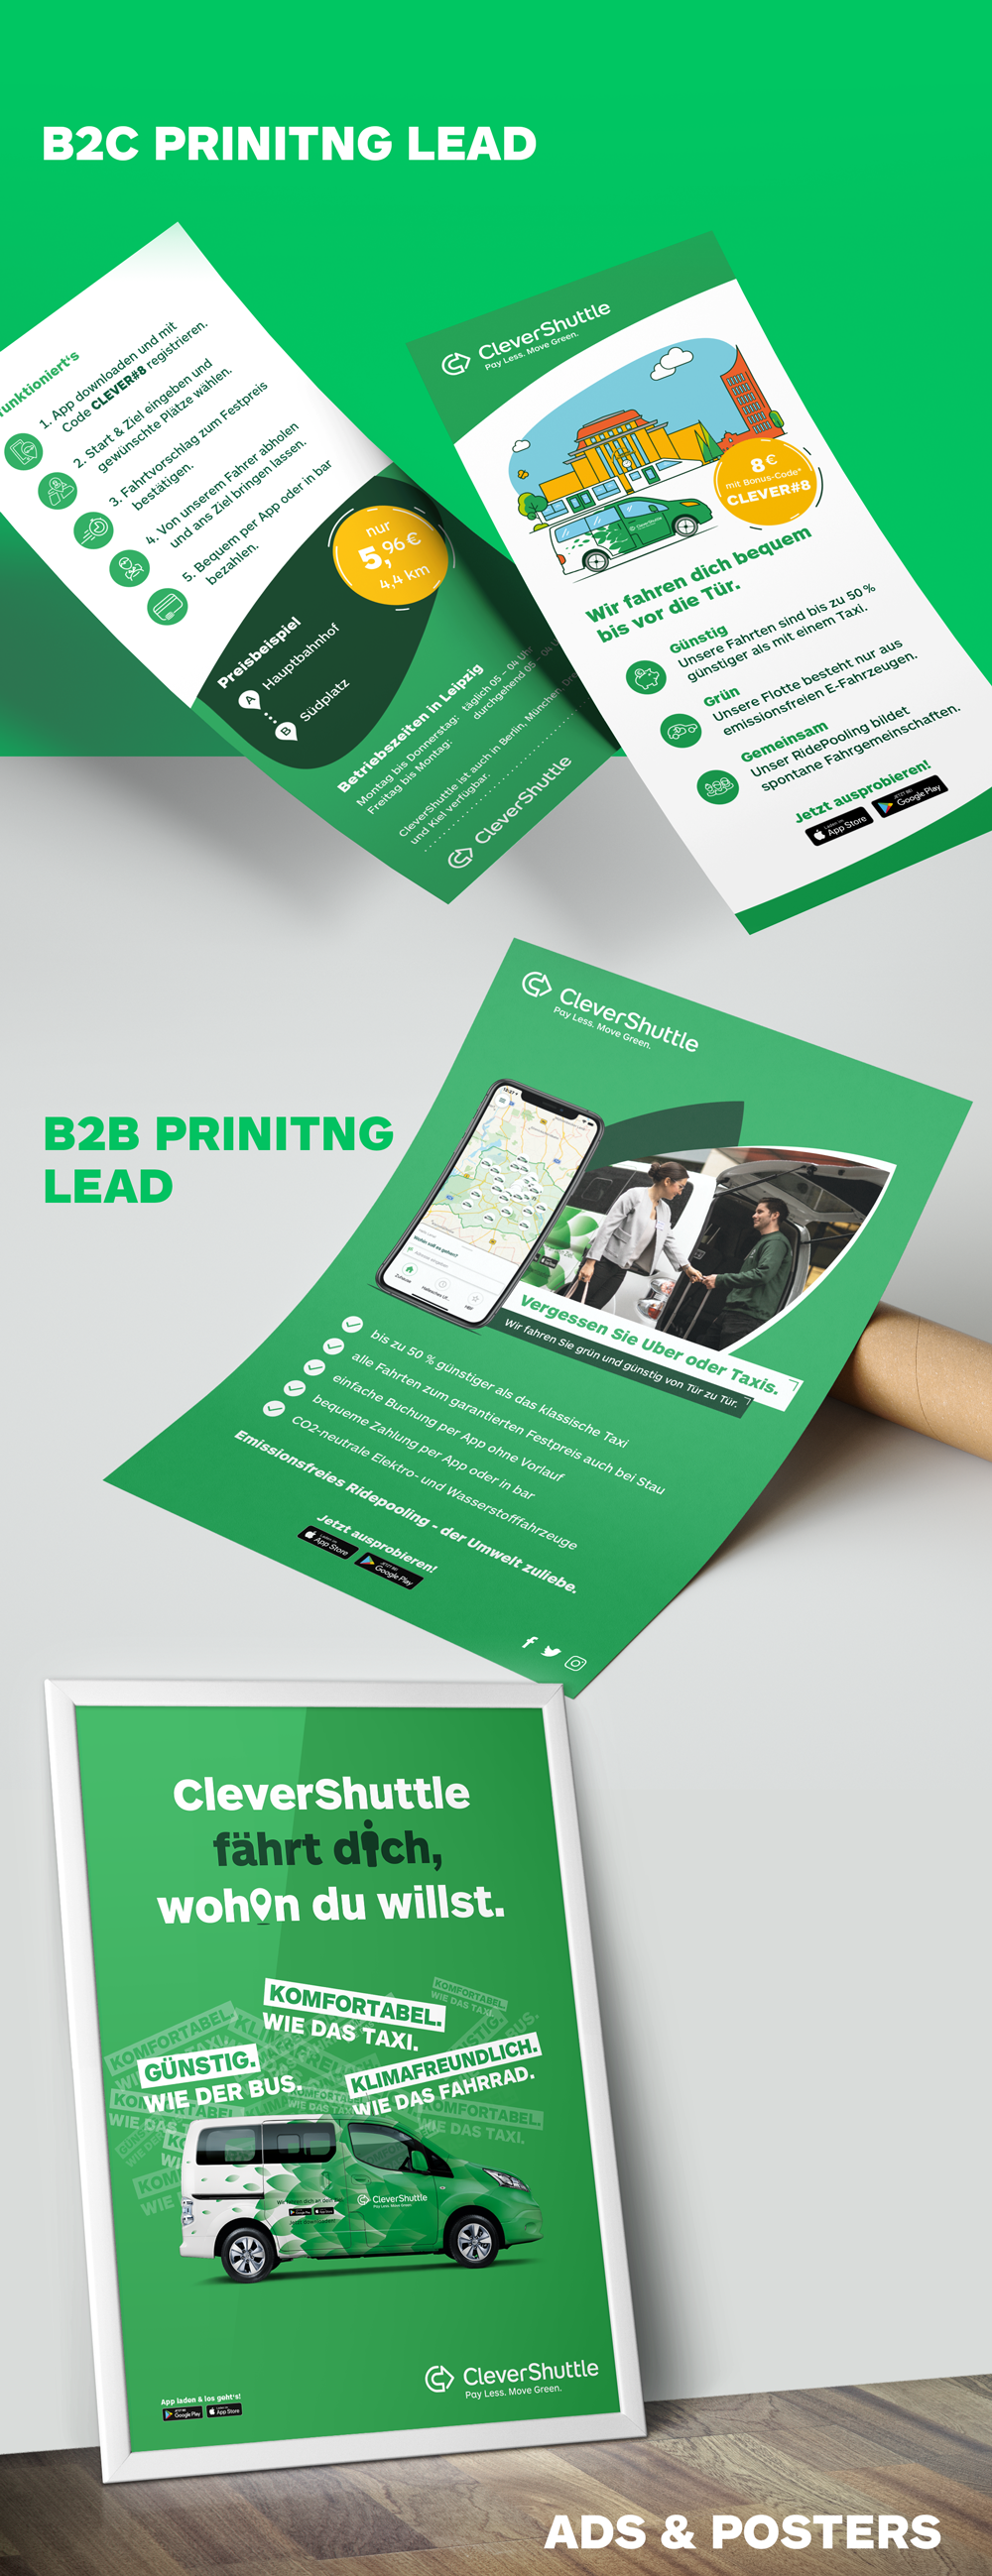 Flyers and poster design for CleverShuttle.